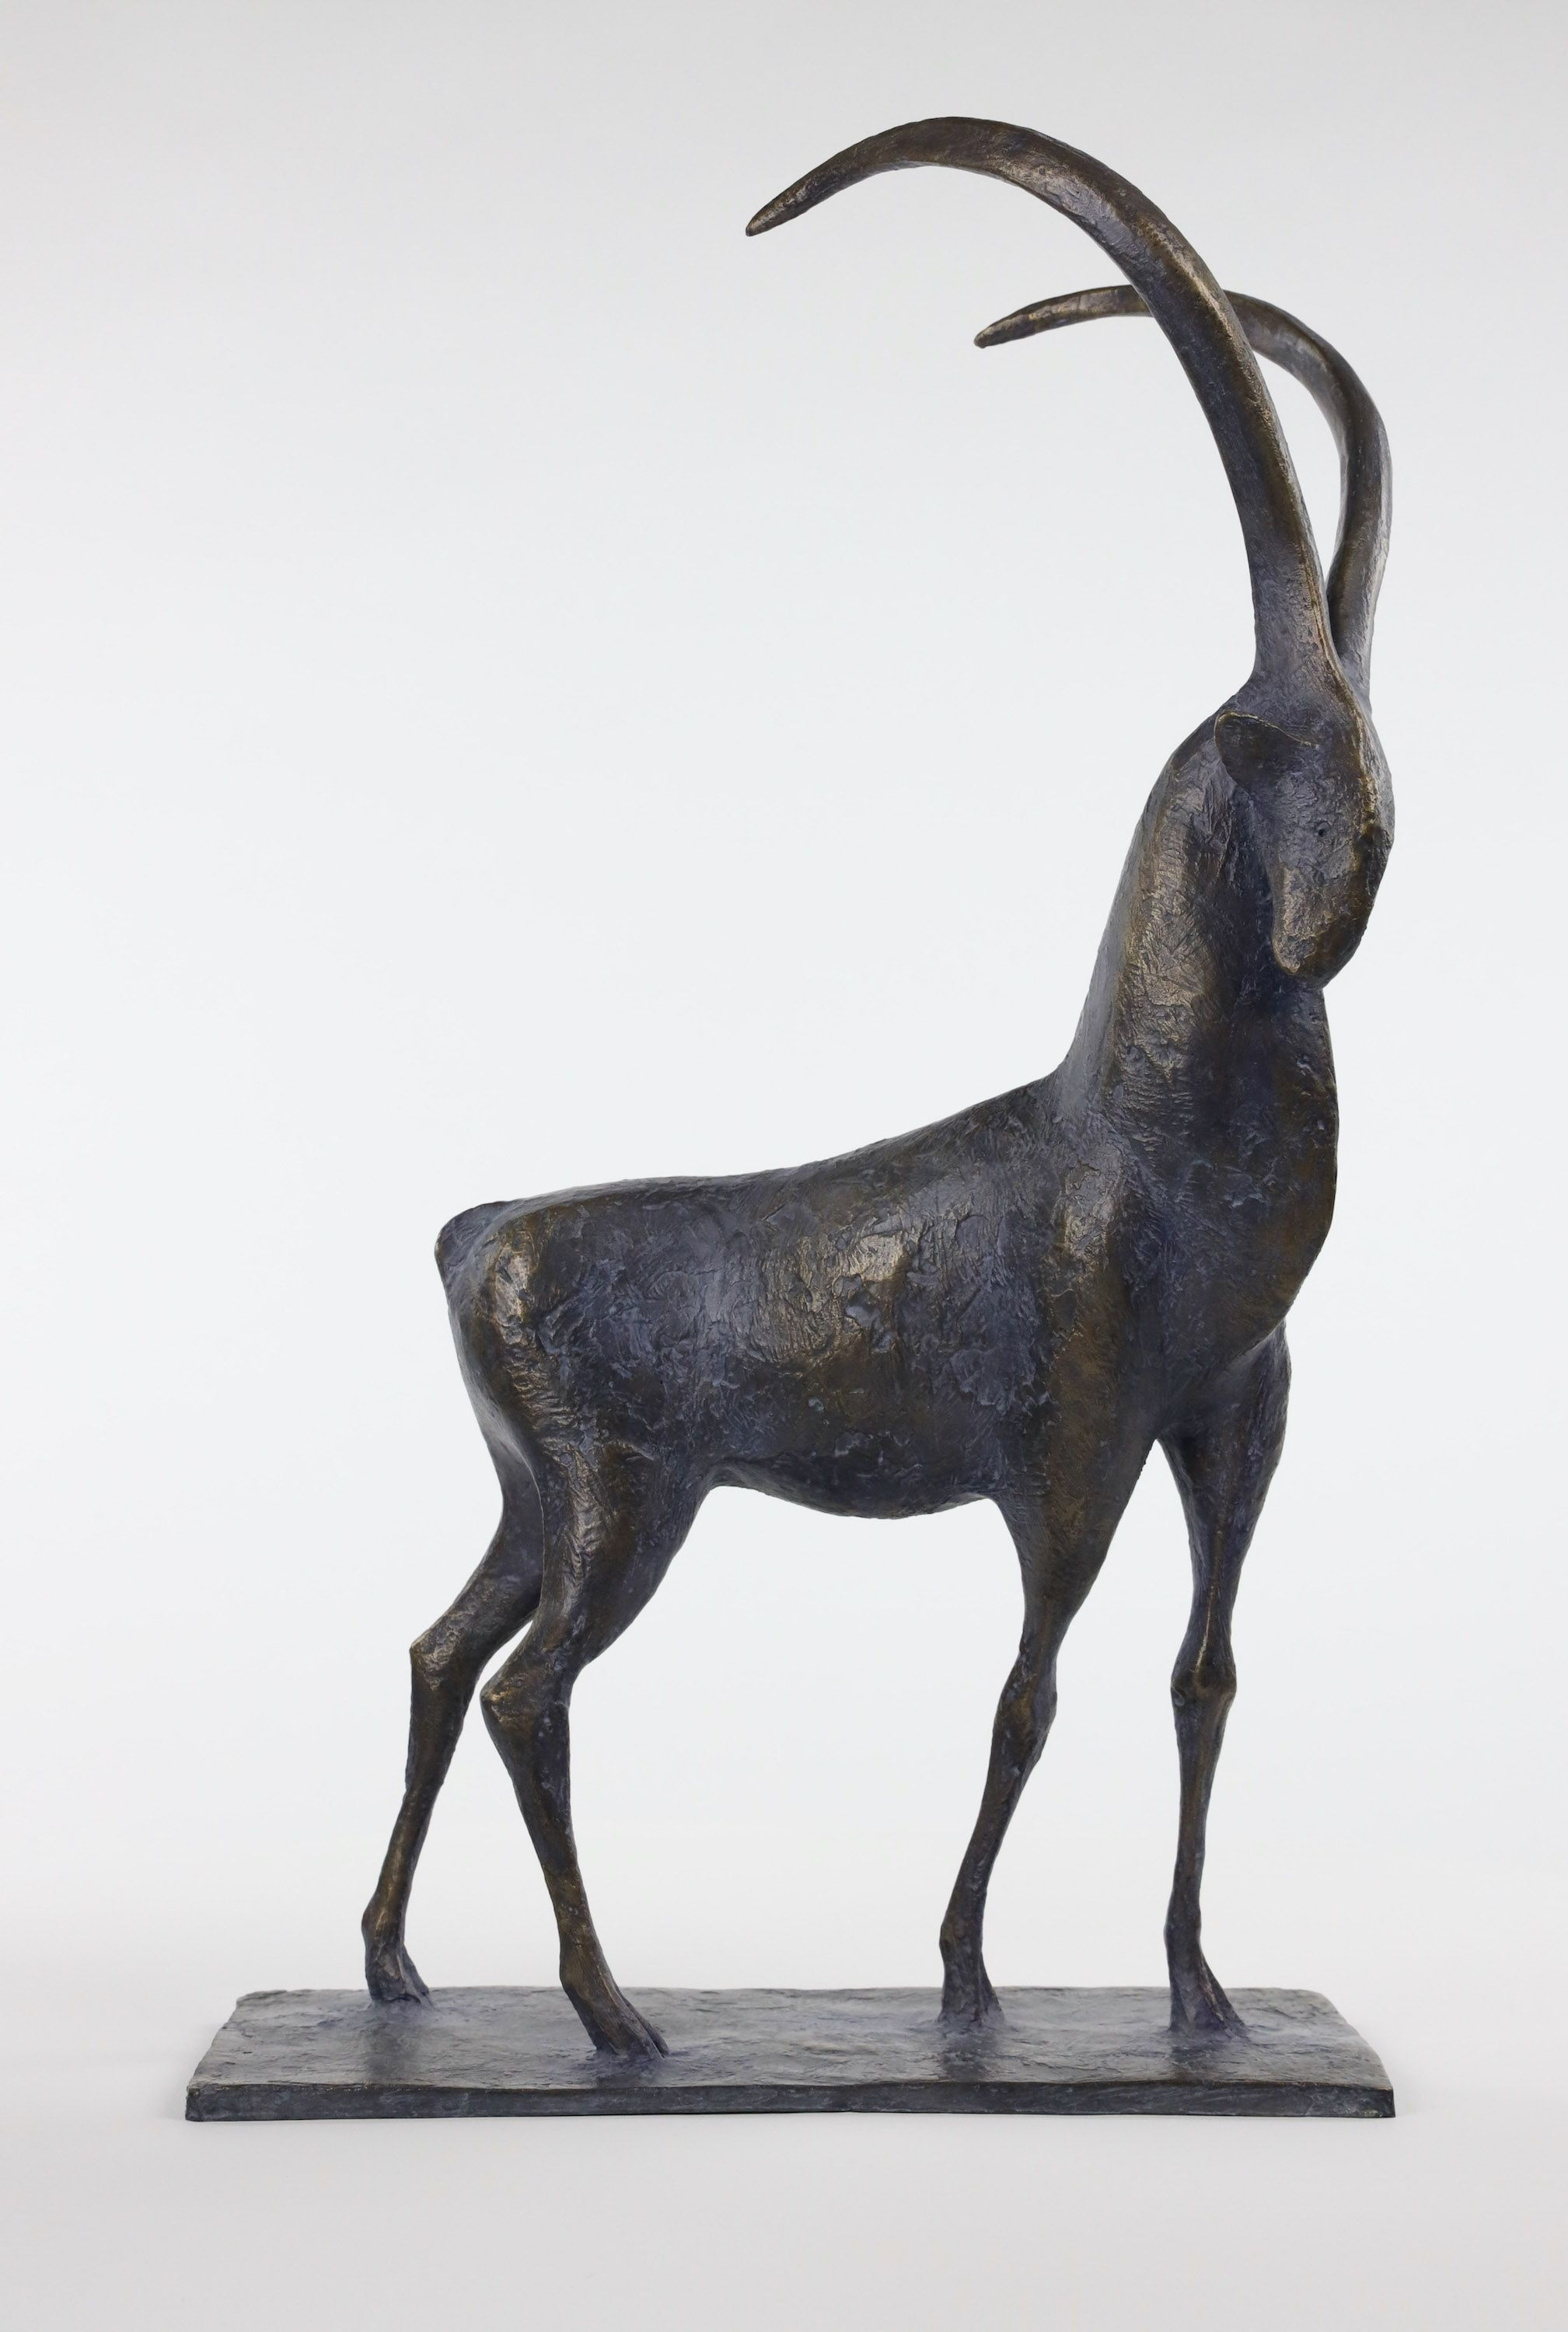 Ibex,Pierre Yermia,Sculpture